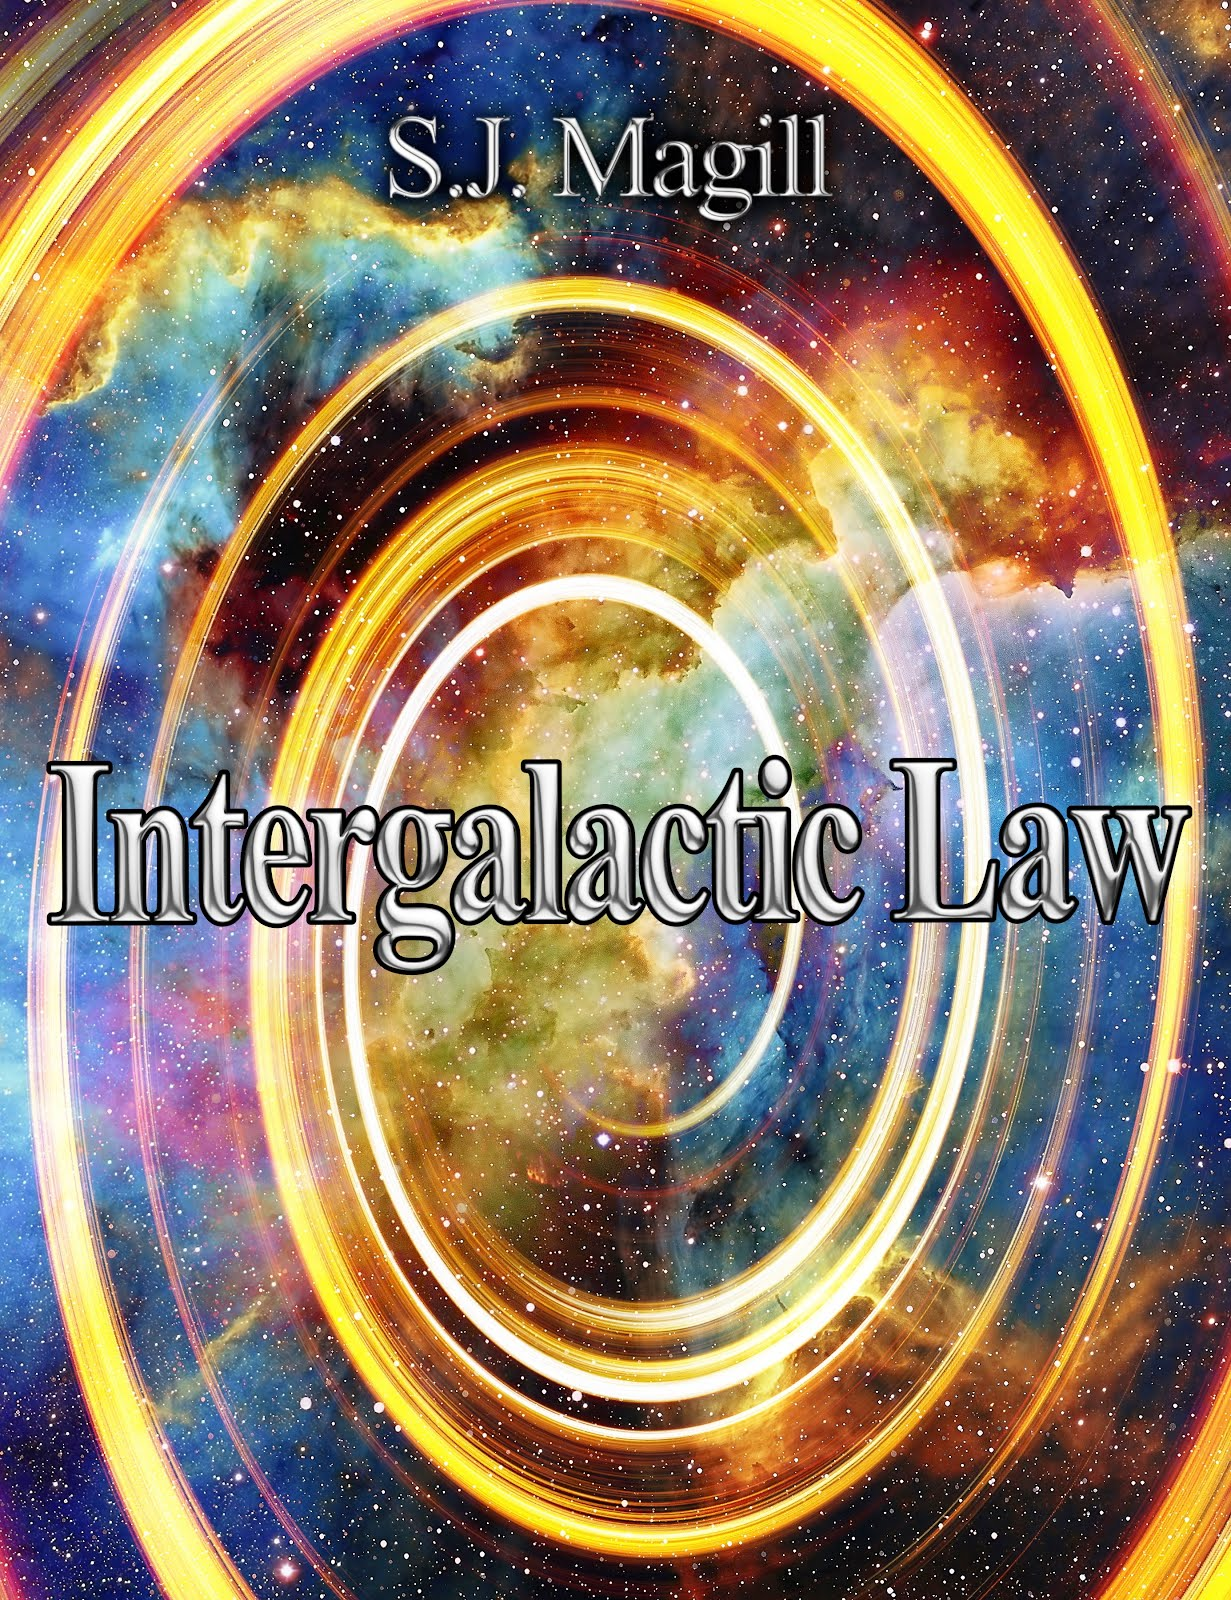 Intergalactic Law at Amazon (US)